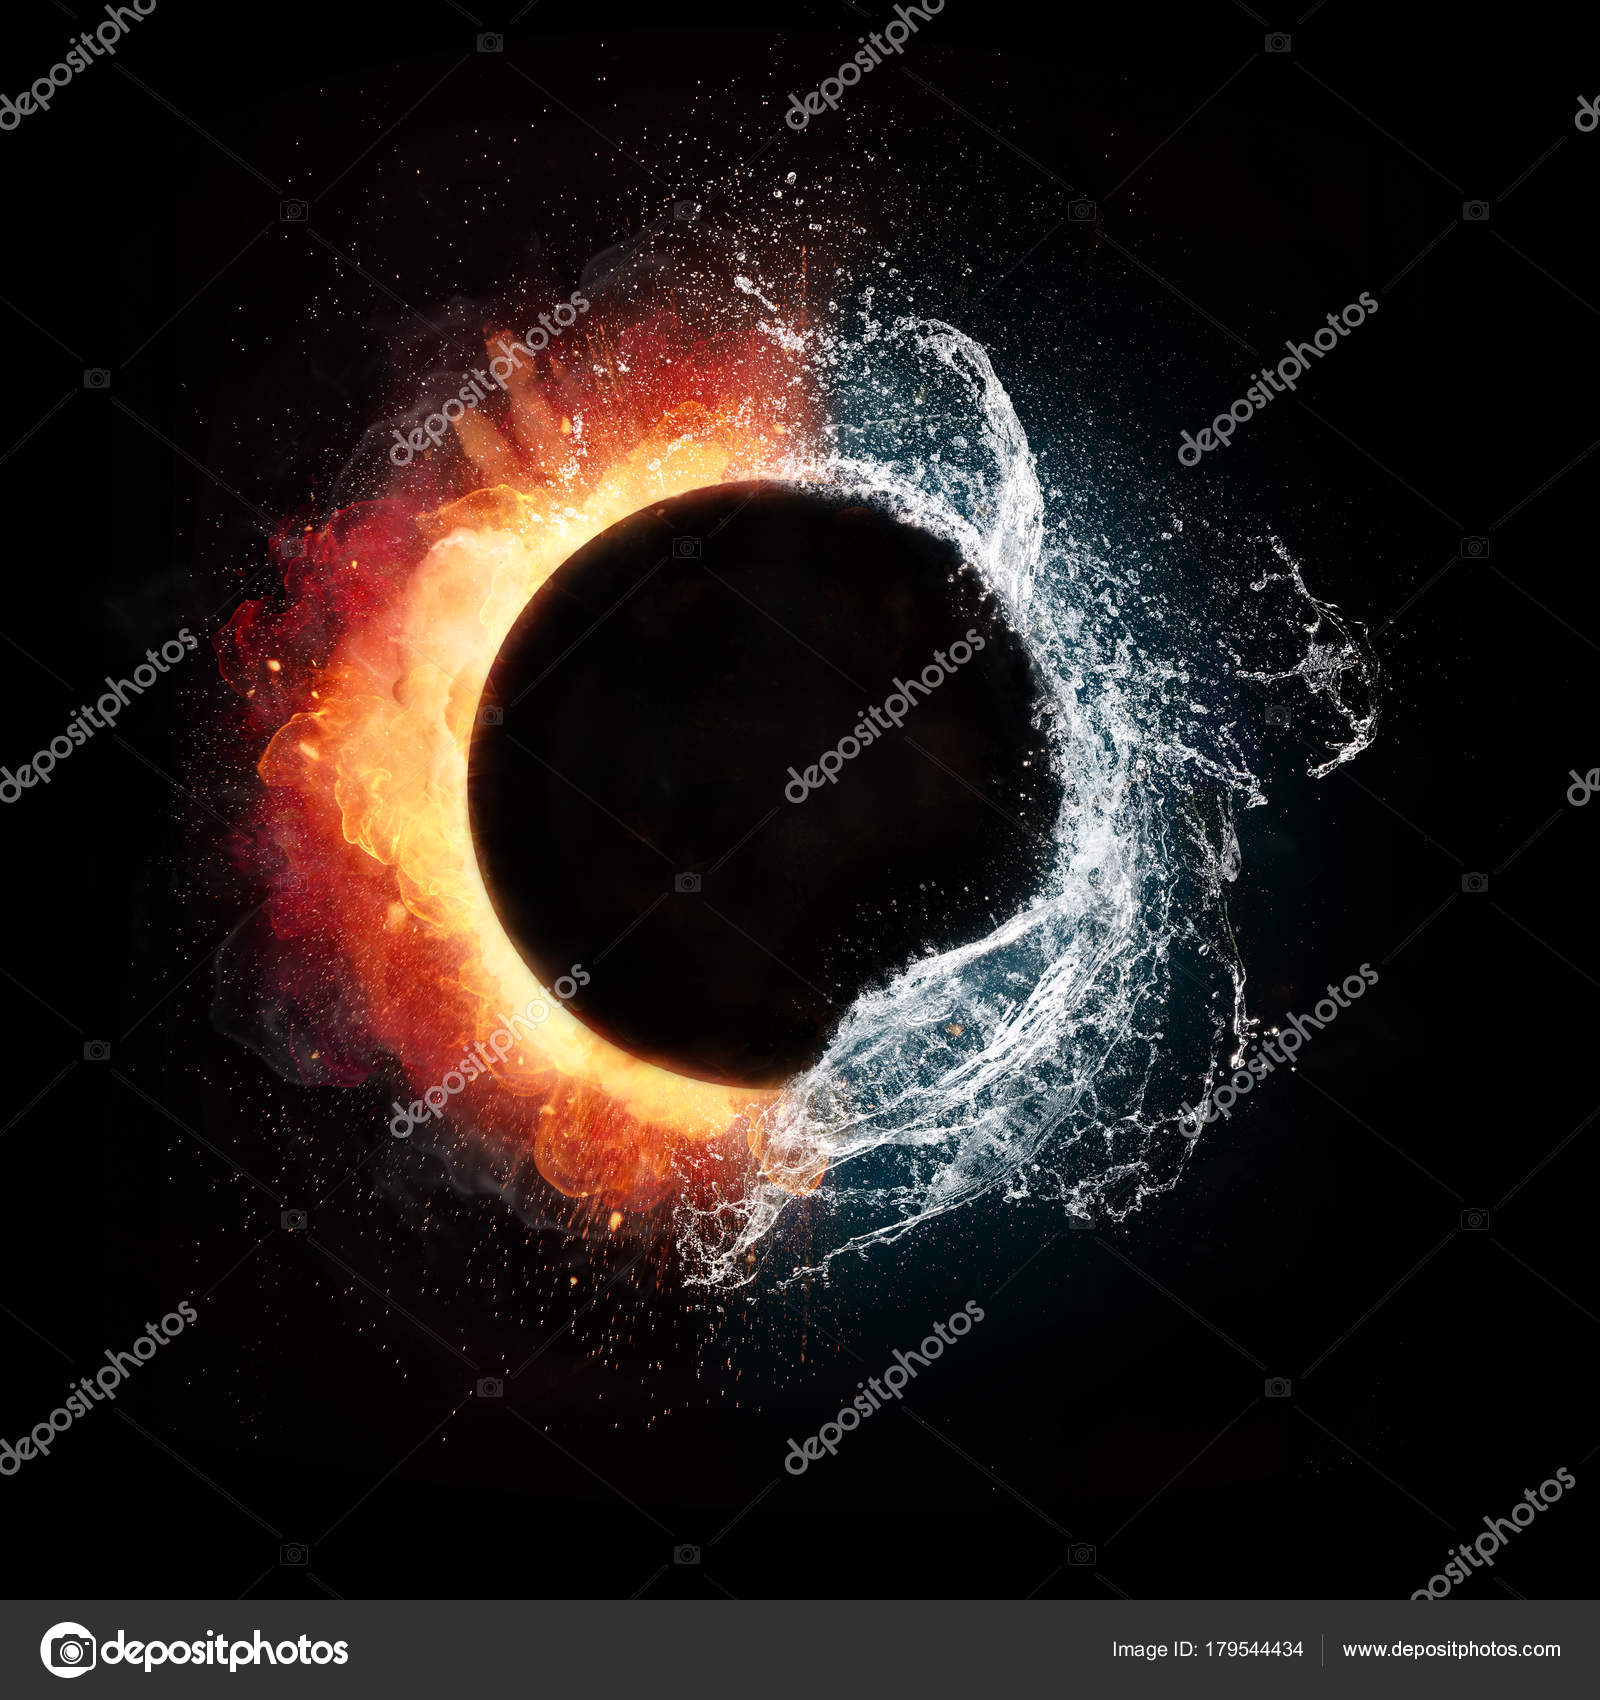 Fire and water elements in spherical shape stock photo jagcz fire and water elements in spherical shape stock photo biocorpaavc Choice Image